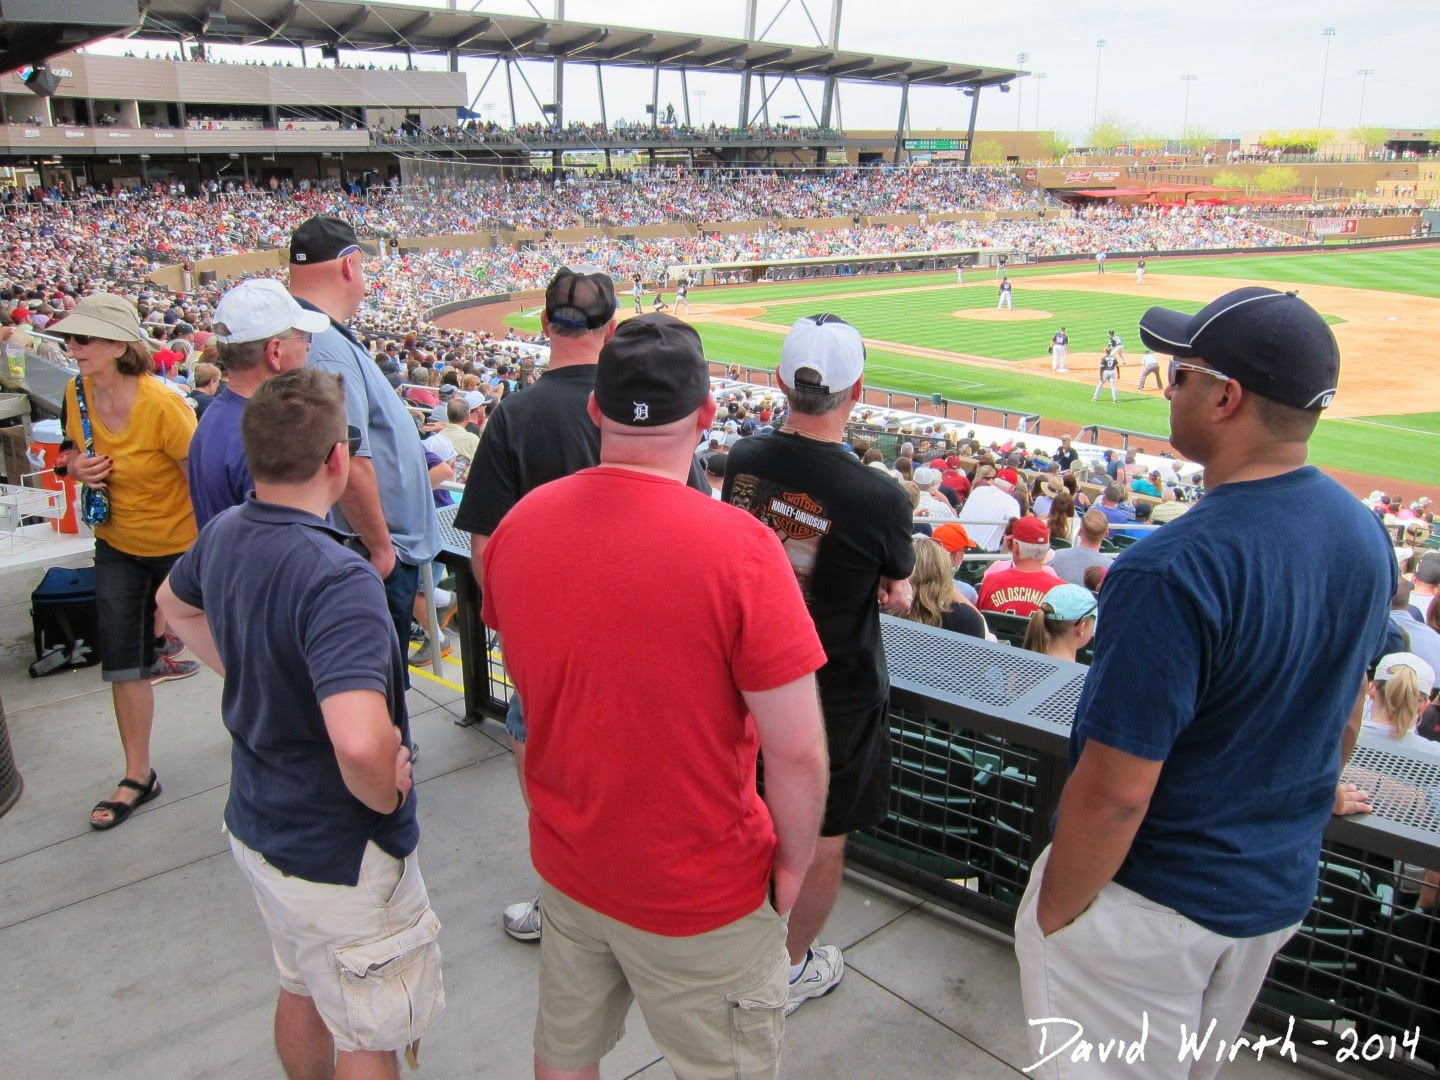 arizona spring training baseball